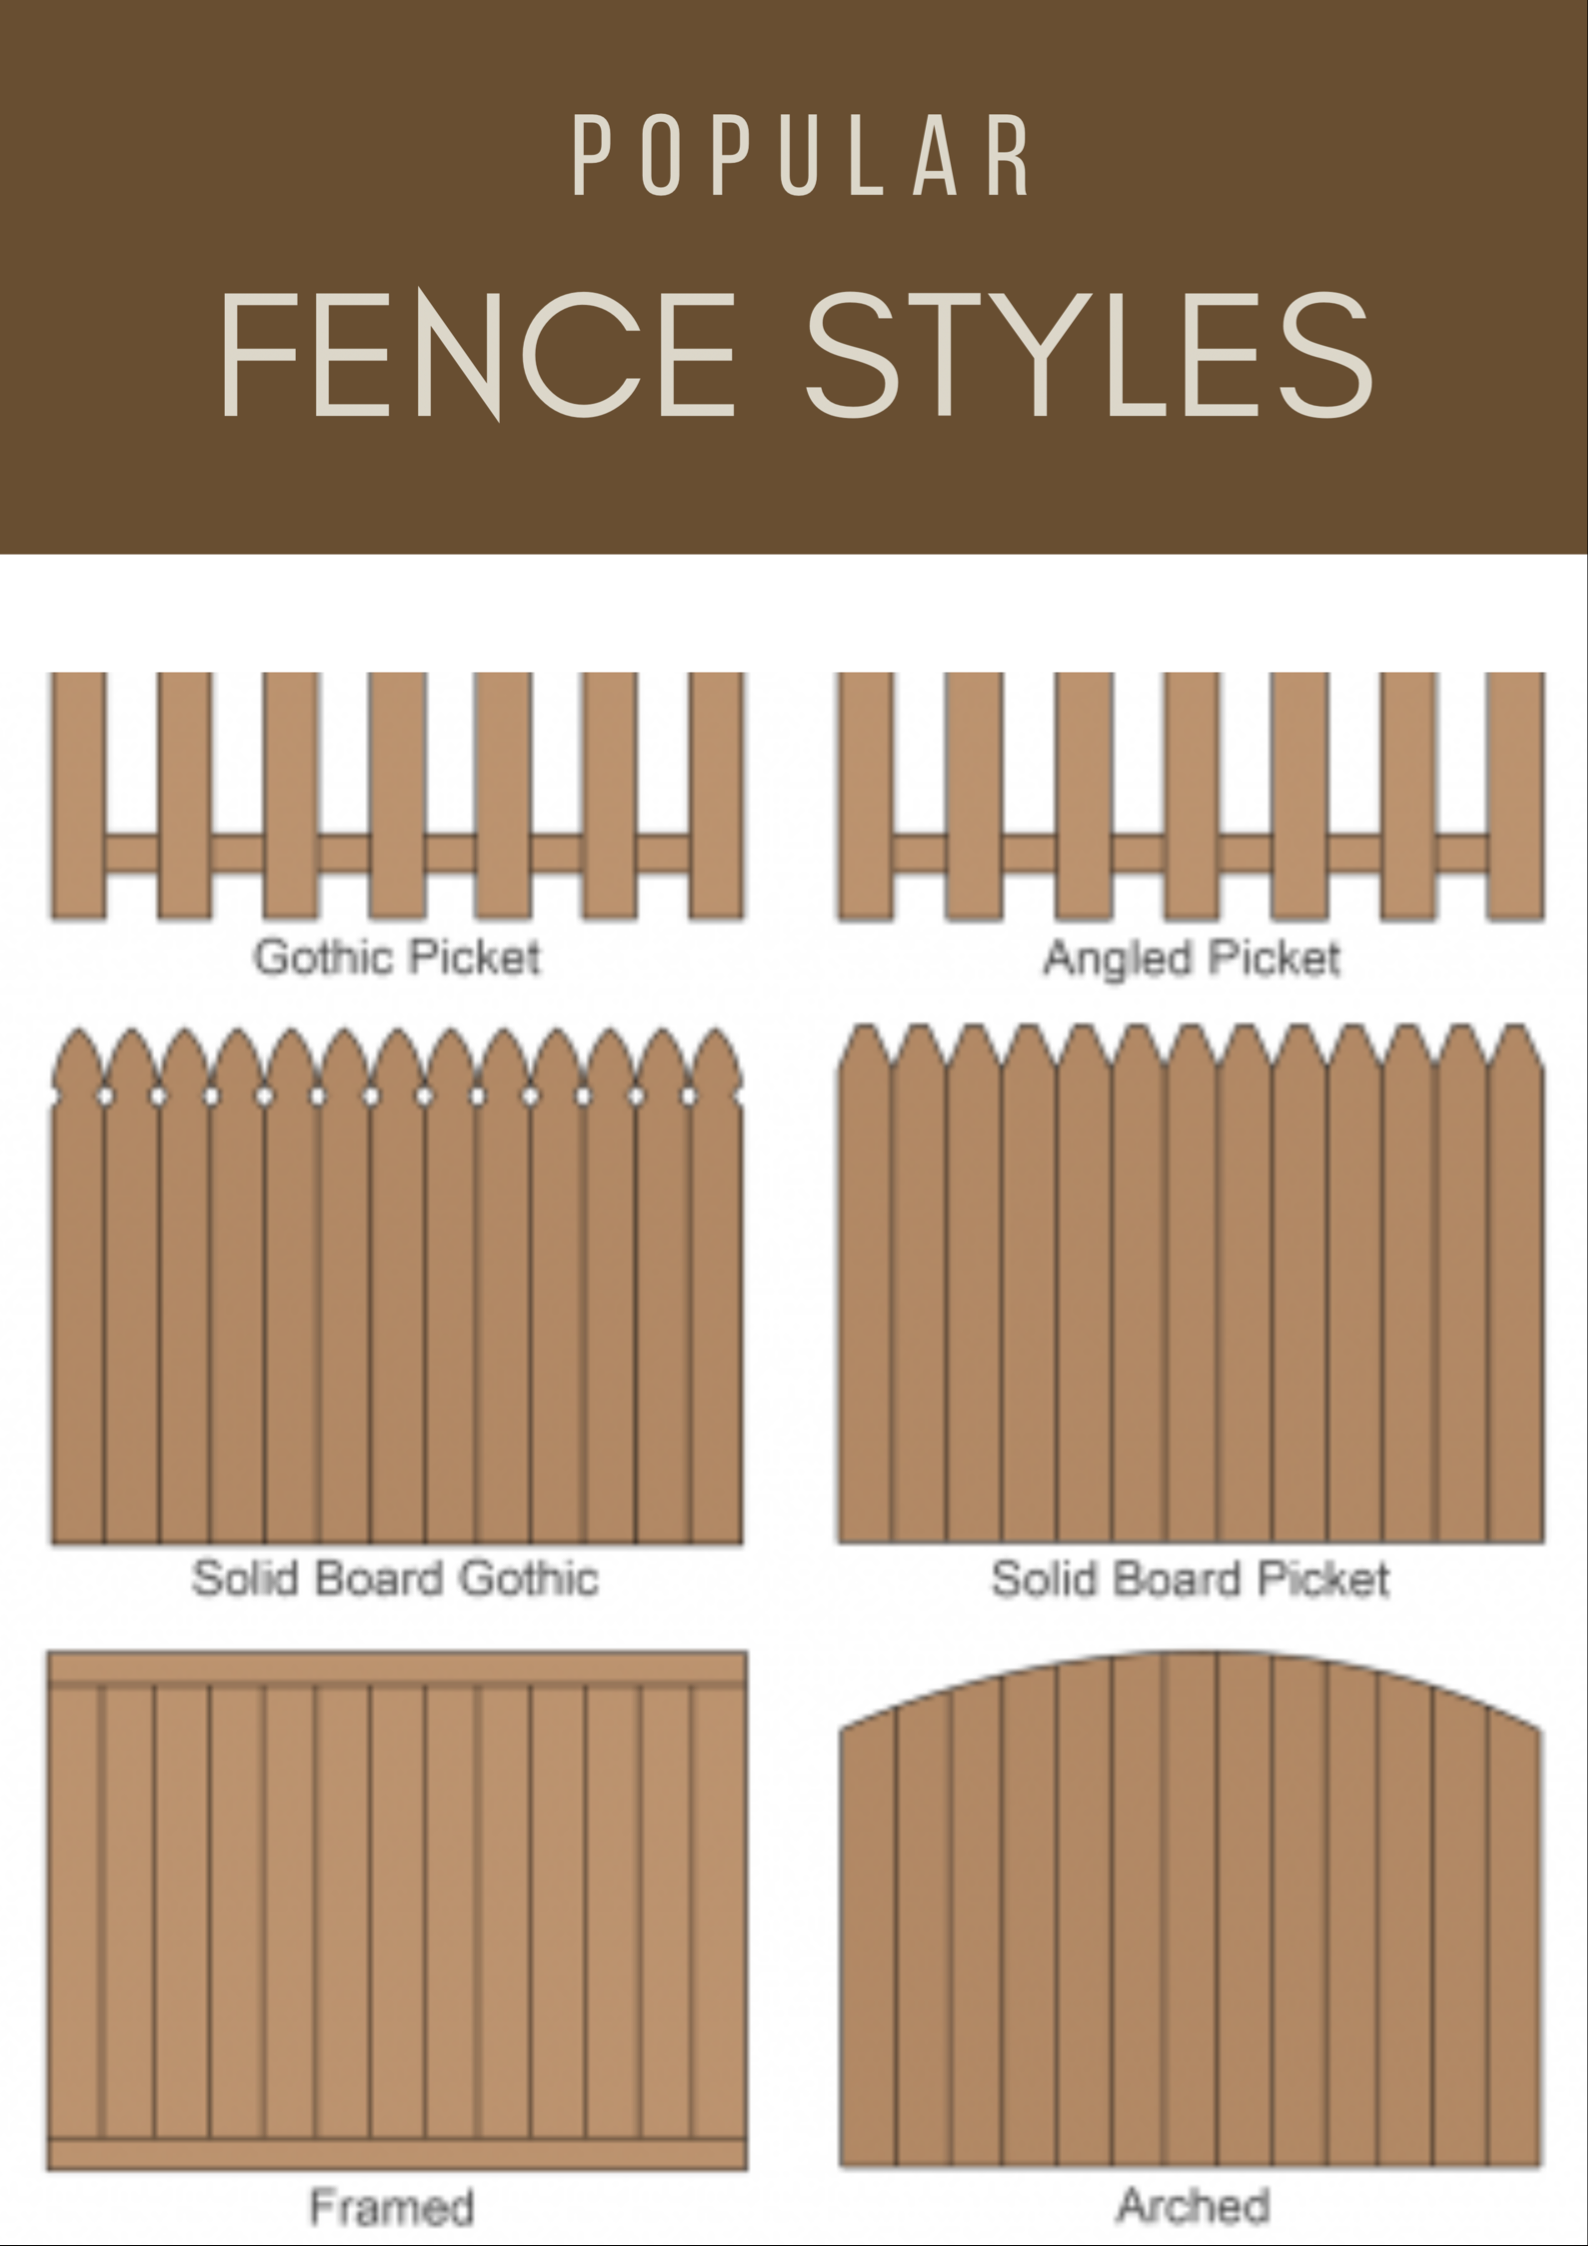 15 Popular Fence Styles for Privacy and Picket Fences in ...